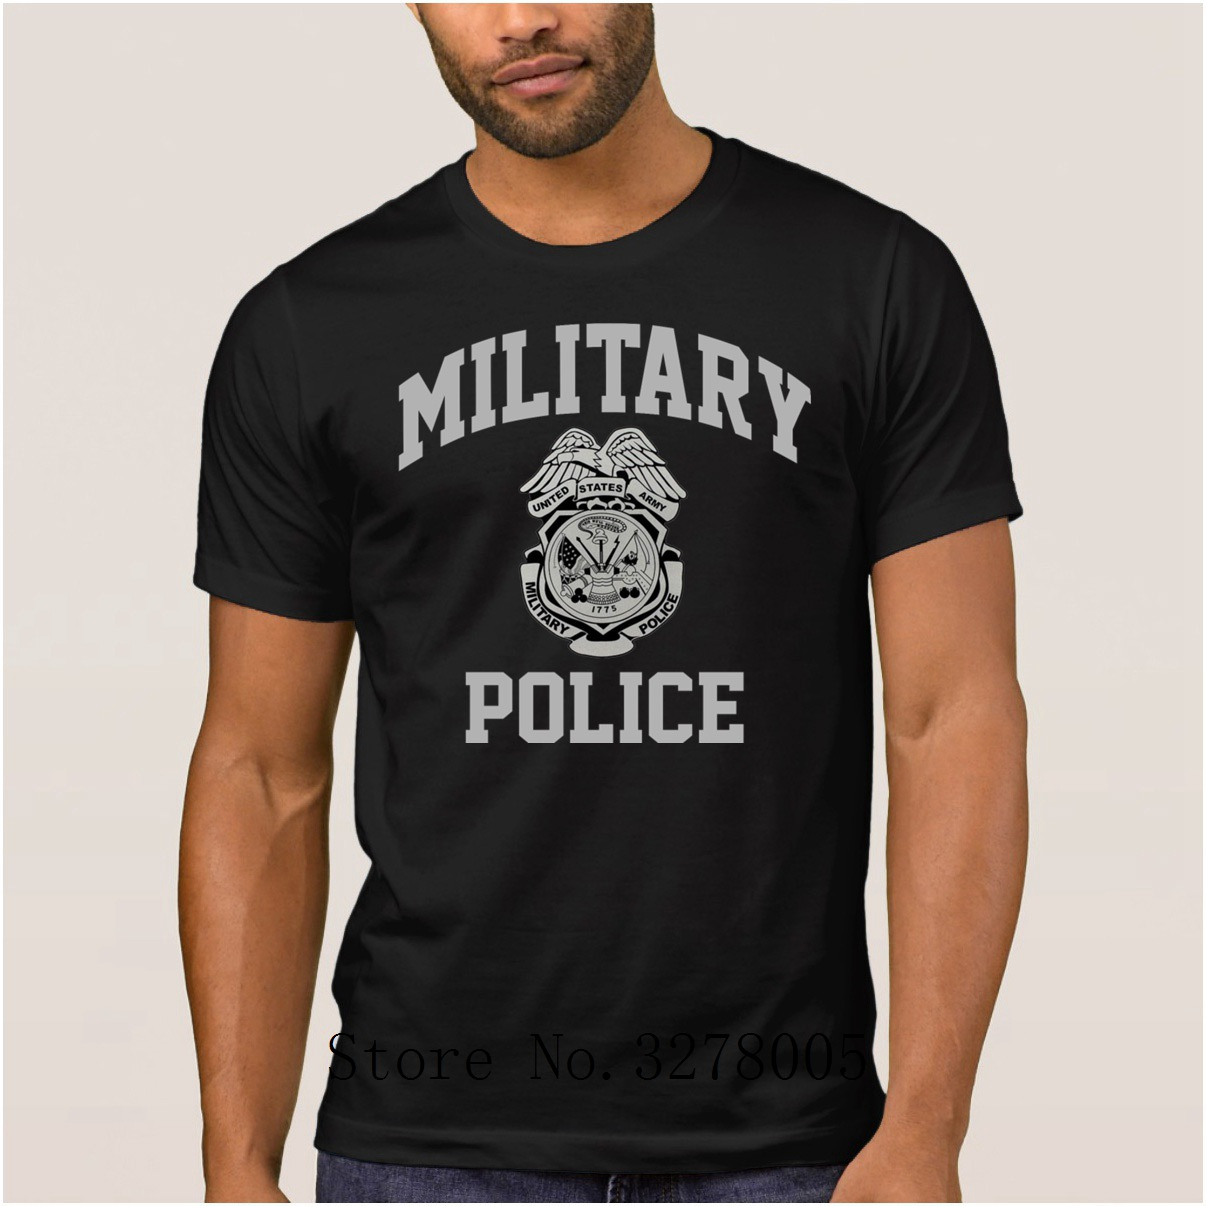 6a4f4a33 La Maxpa Custom Printed Clothing Famous Military Police T Shirts Funky Slim  Men T Shirt 2018 Cotton Simple Male Tee Shirt Tee-in T-Shirts from Men's ...